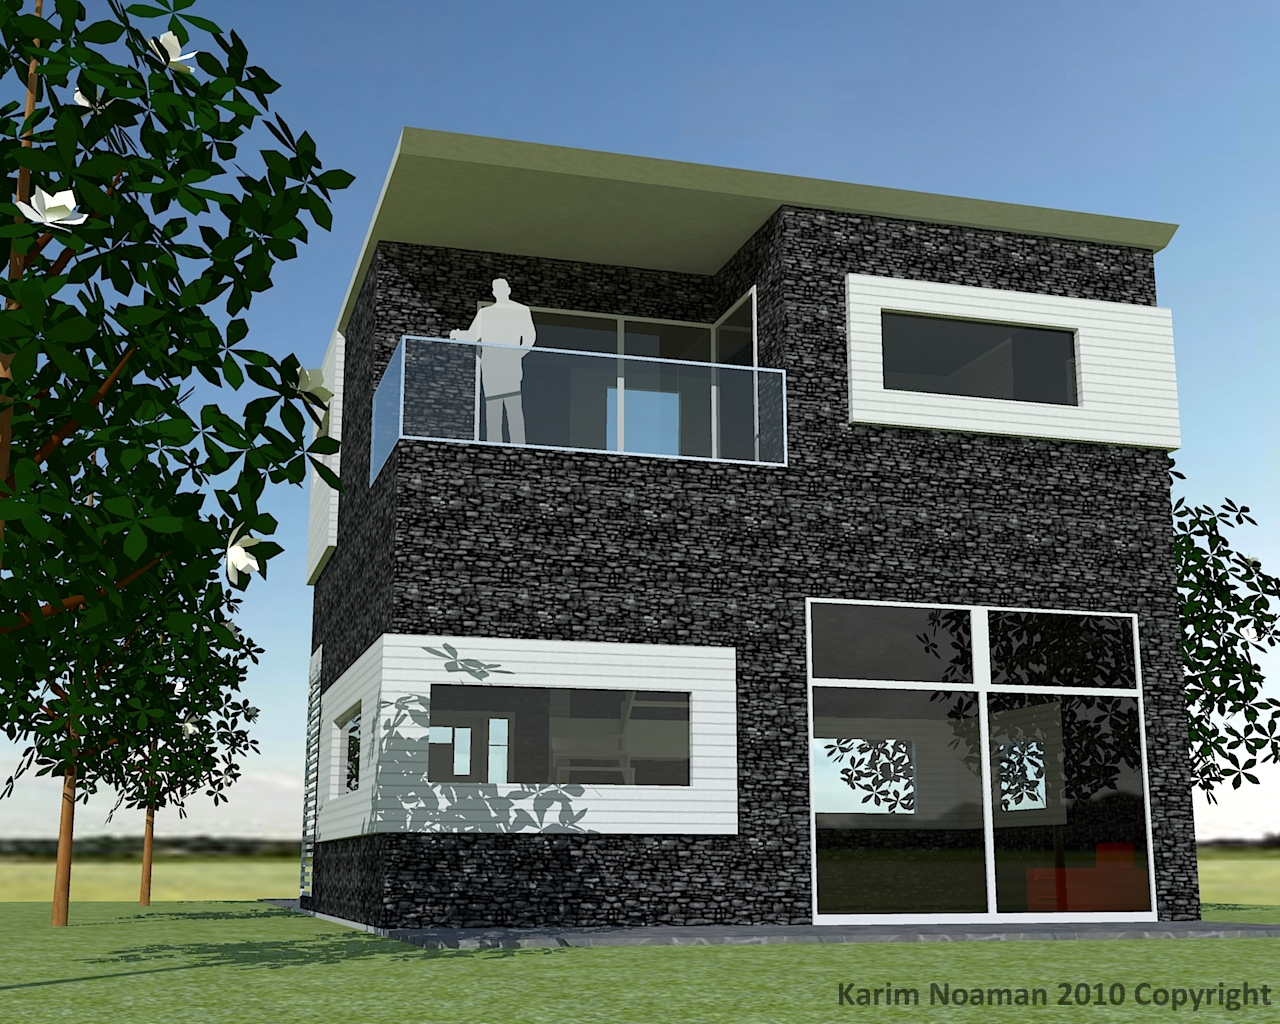 Simple modern house design by knoaman on deviantart for Simple modern house architecture